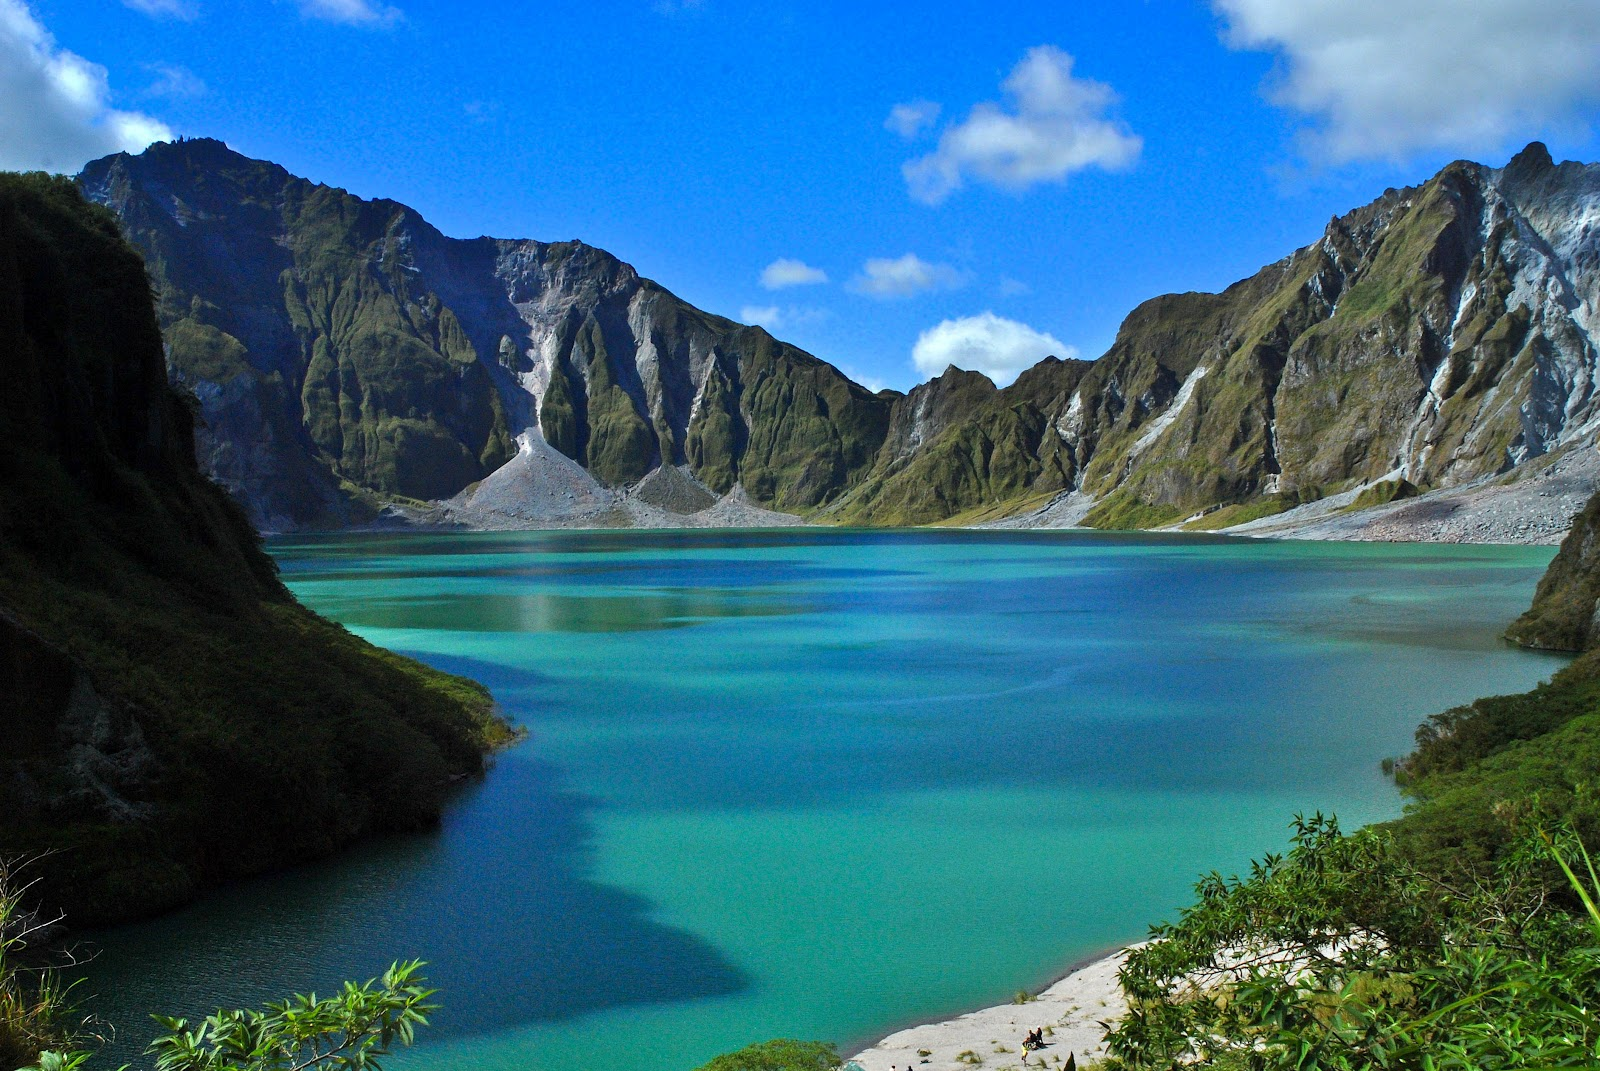 Mountain Climbing in The Philippines